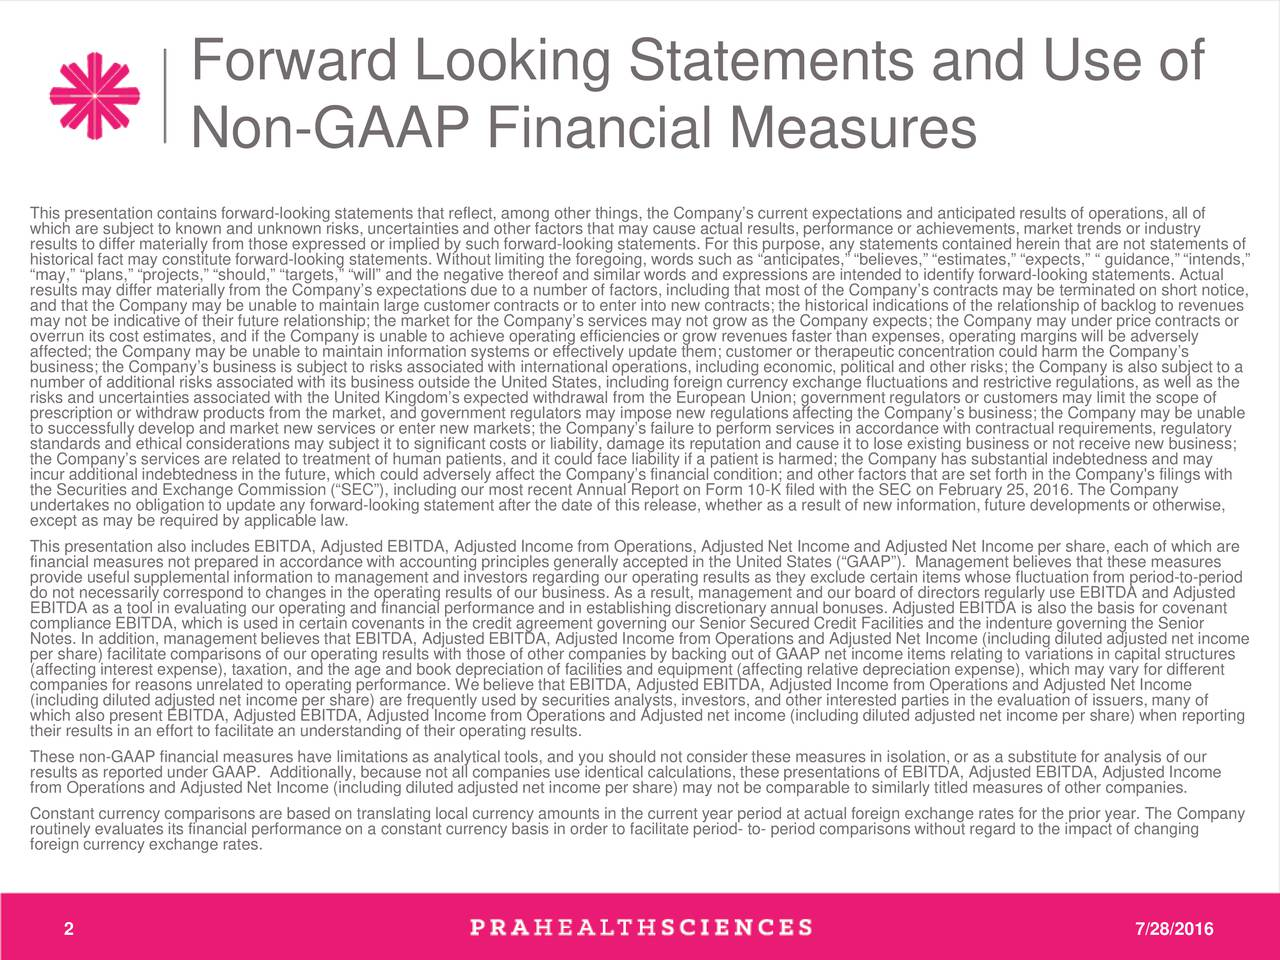 Non-GAAP Financial Measures This presentation contains forward-looking statements that reflect, among other things, the Companys current expectations and anticipated results of operations, all of which are subject to known and unknown risks, uncertainties and other factors that may cause actual results, performance or achievements, market trends or industry results to differ materially from those expressed or implied by such forward-looking statements. For this purpose, any statements contained herein that are not statements of may, plans, projects, should, targets, will and the negative thereof and similar words and expressions are intended to identify forward-looking statements. Actualnds, results may differ materially from the Companys expectations due to a number of factors, including that most of the Companys contracts may be terminated on short notice, and that the Company may be unable to maintain large customer contracts or to enter into new contracts; the historical indications of the relationship of backlog to revenues may not be indicative of their future relationship; the market for the Companys services may not grow as the Company expects; the Company may under price contracts or overrun its cost estimates, and if the Company is unable to achieve operating efficiencies or grow revenues faster than expenses, operating margins will be adversely affected; the Company may be unable to maintain information systems or effectively update them; customer or therapeutic concentration could harm the Companys number of additional risks associated with its business outside the United States, including foreign currency exchange fluctuations and restrictive regulations, as well as the risks and uncertainties associated with the United Kingdoms expected withdrawal from the European Union; government regulators or customers may limit the scope of prescription or withdraw products from the market, and government regulators may impose new regulations affecting the Company